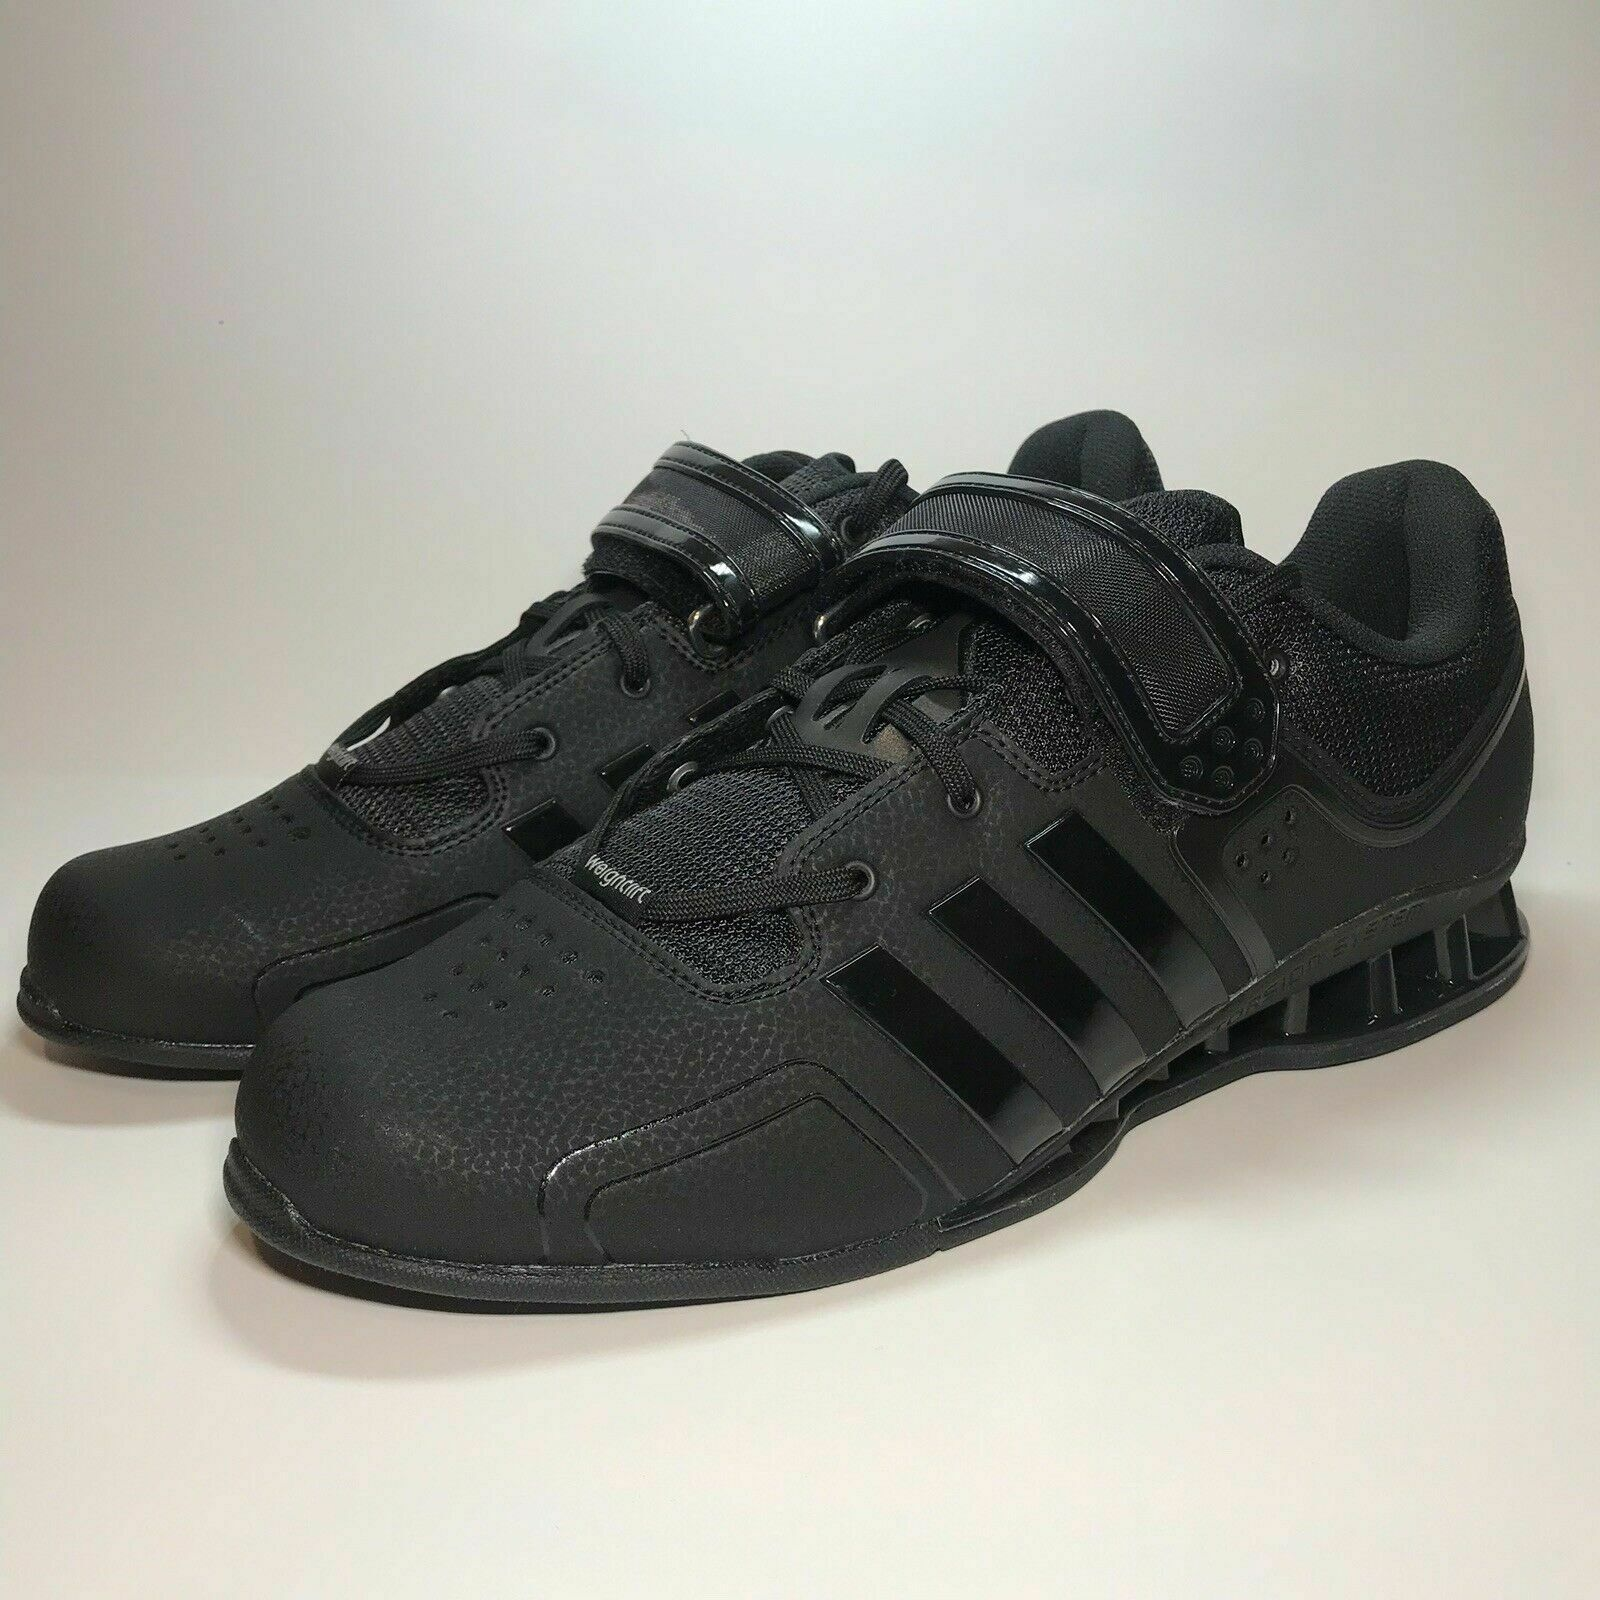 black adipowers Online Shopping for